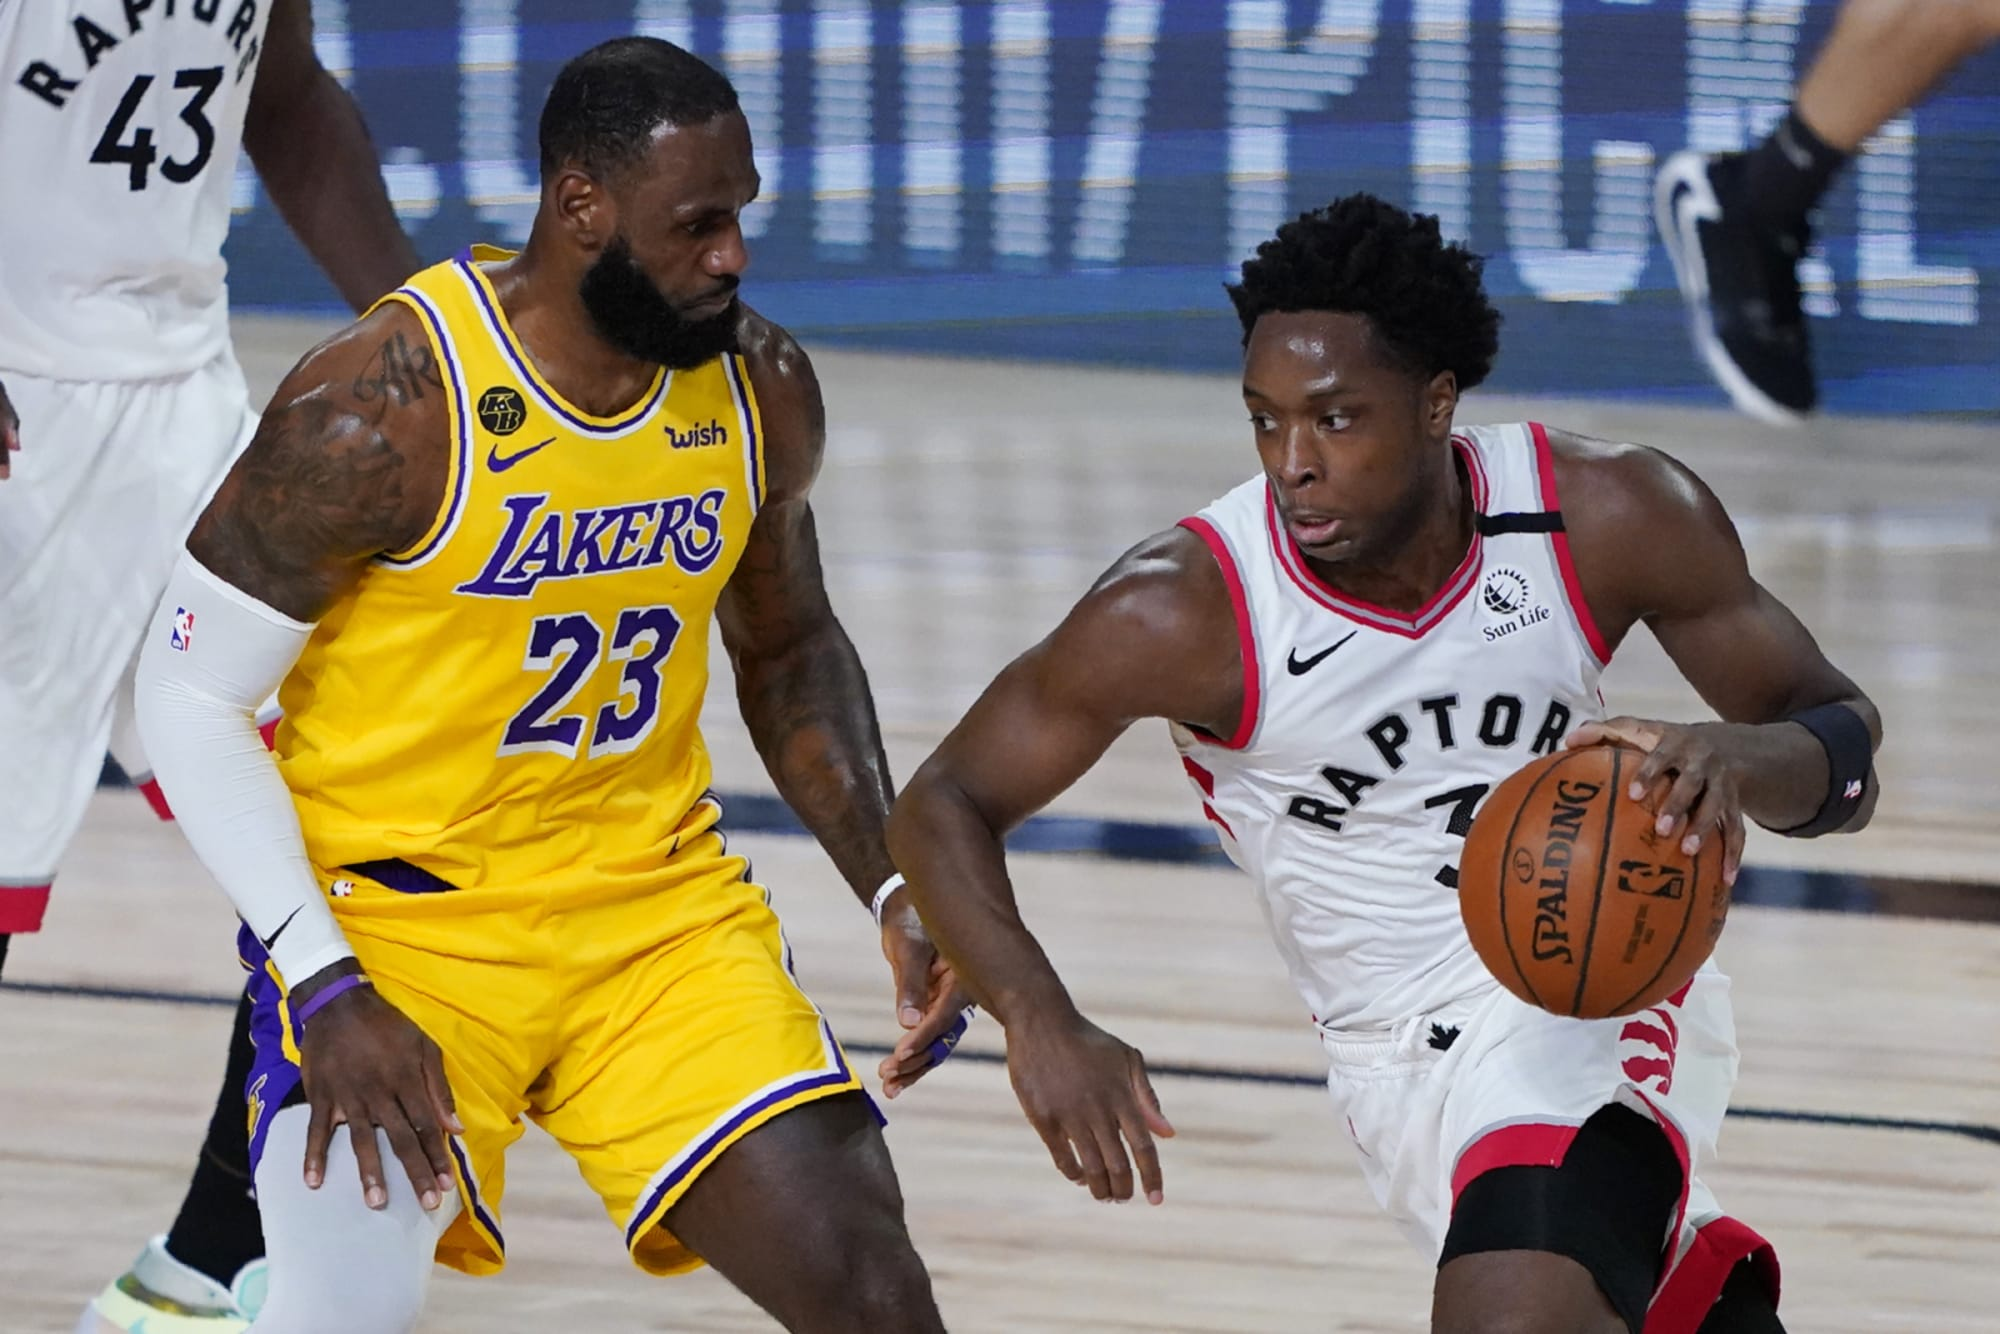 Toronto Raptors: Should the Raptors offer OG Anunoby a contract extension?